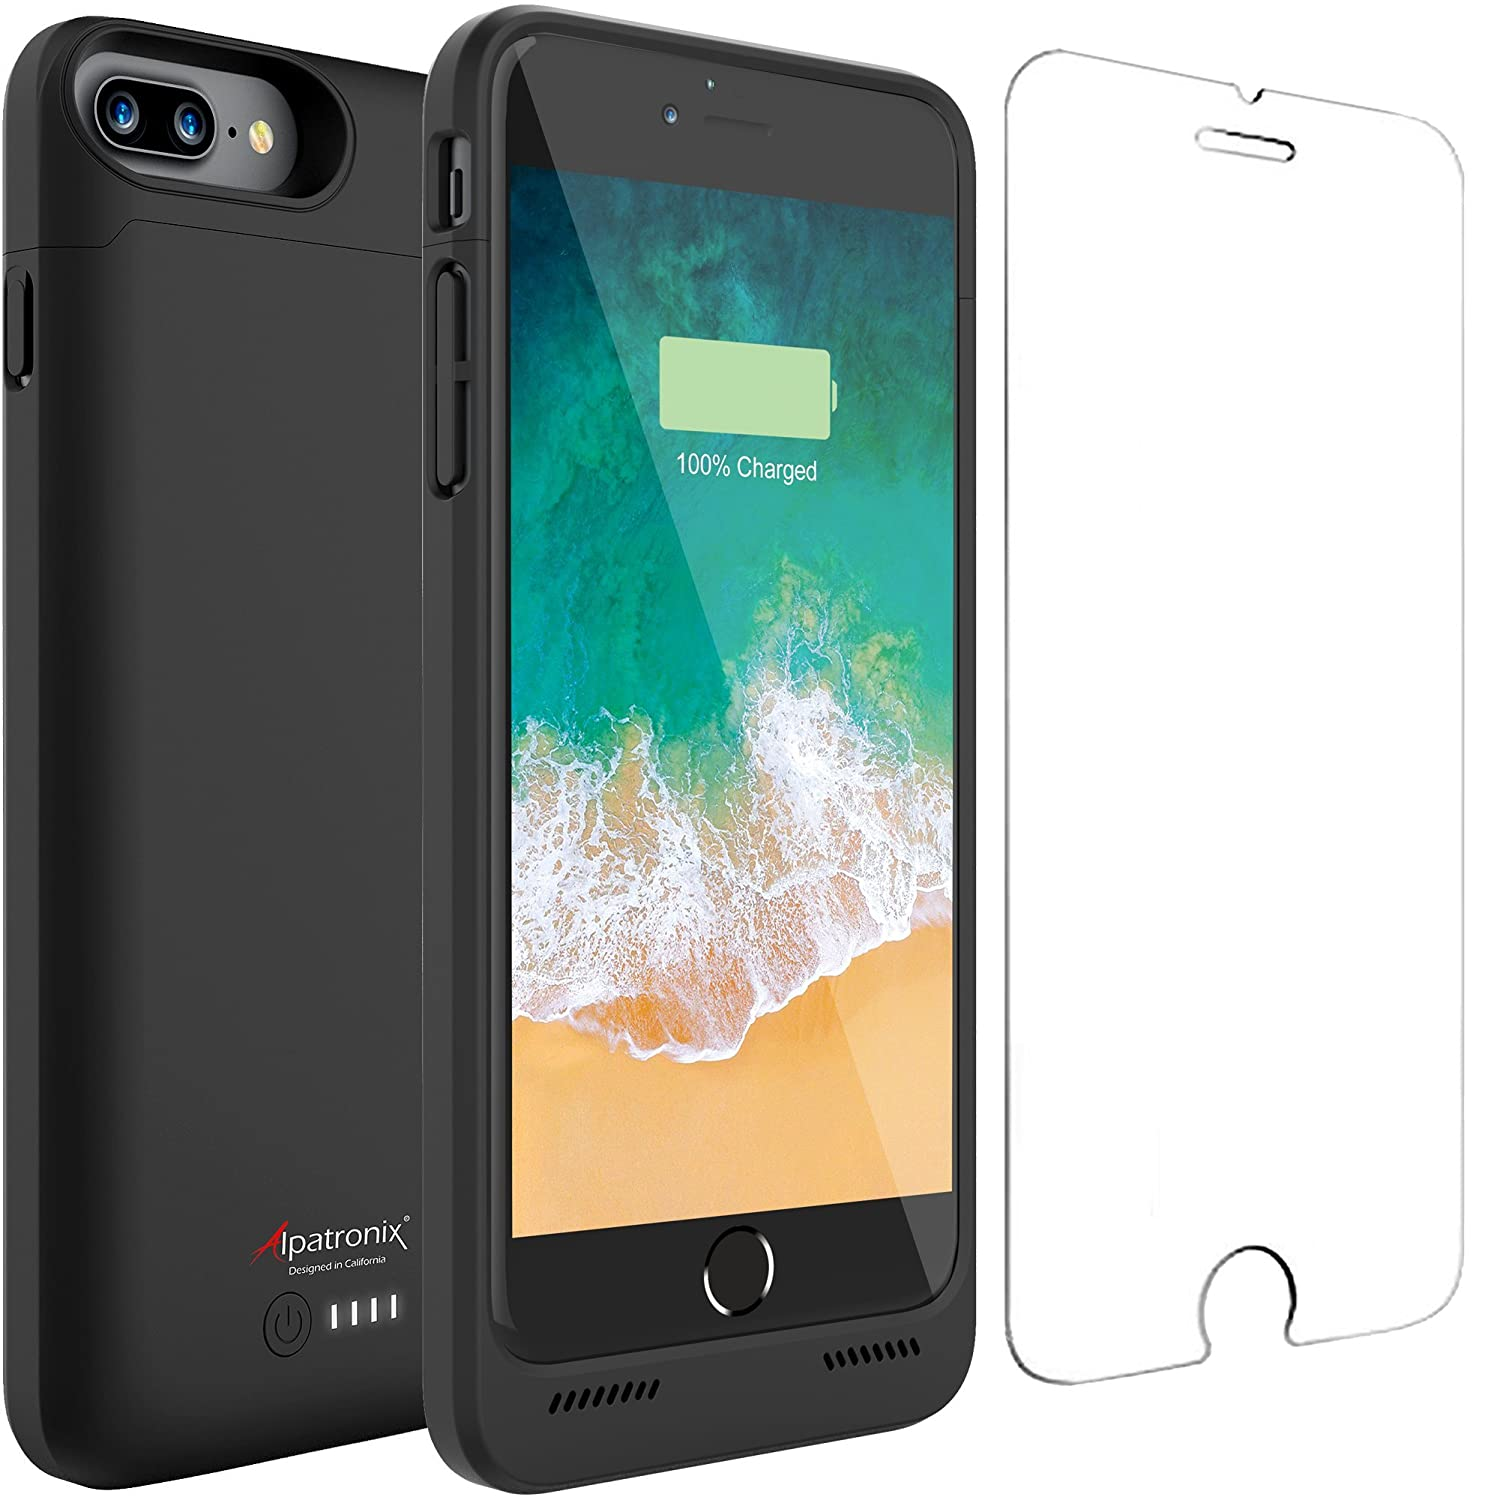 iPhone 7 Plus Battery Case, Alpatronix BX180plus 5.5-inch 5000mAh Slim External Rechargeable Extended Protective Portable Charging Case & Charger Cover for iPhone 7+ Juice Bank Power Pack - Black